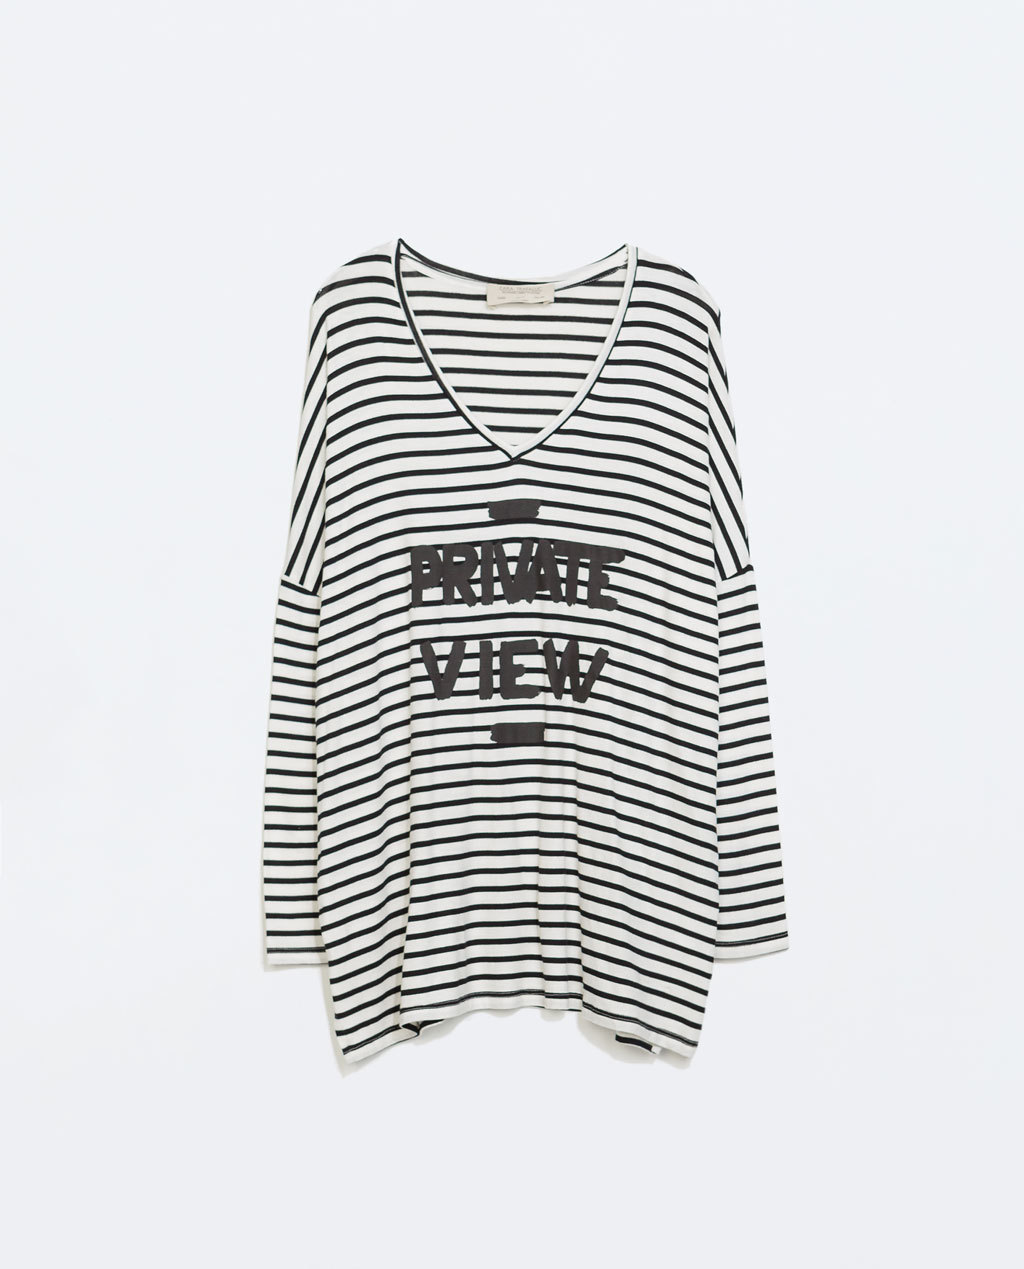 Printed Striped T Shirt - neckline: low v-neck; sleeve style: dolman/batwing; pattern: horizontal stripes; length: below the bottom; style: t-shirt; secondary colour: white; predominant colour: black; occasions: casual; fibres: cotton - stretch; fit: loose; sleeve length: long sleeve; pattern type: fabric; pattern size: standard; texture group: jersey - stretchy/drapey; season: a/w 2014